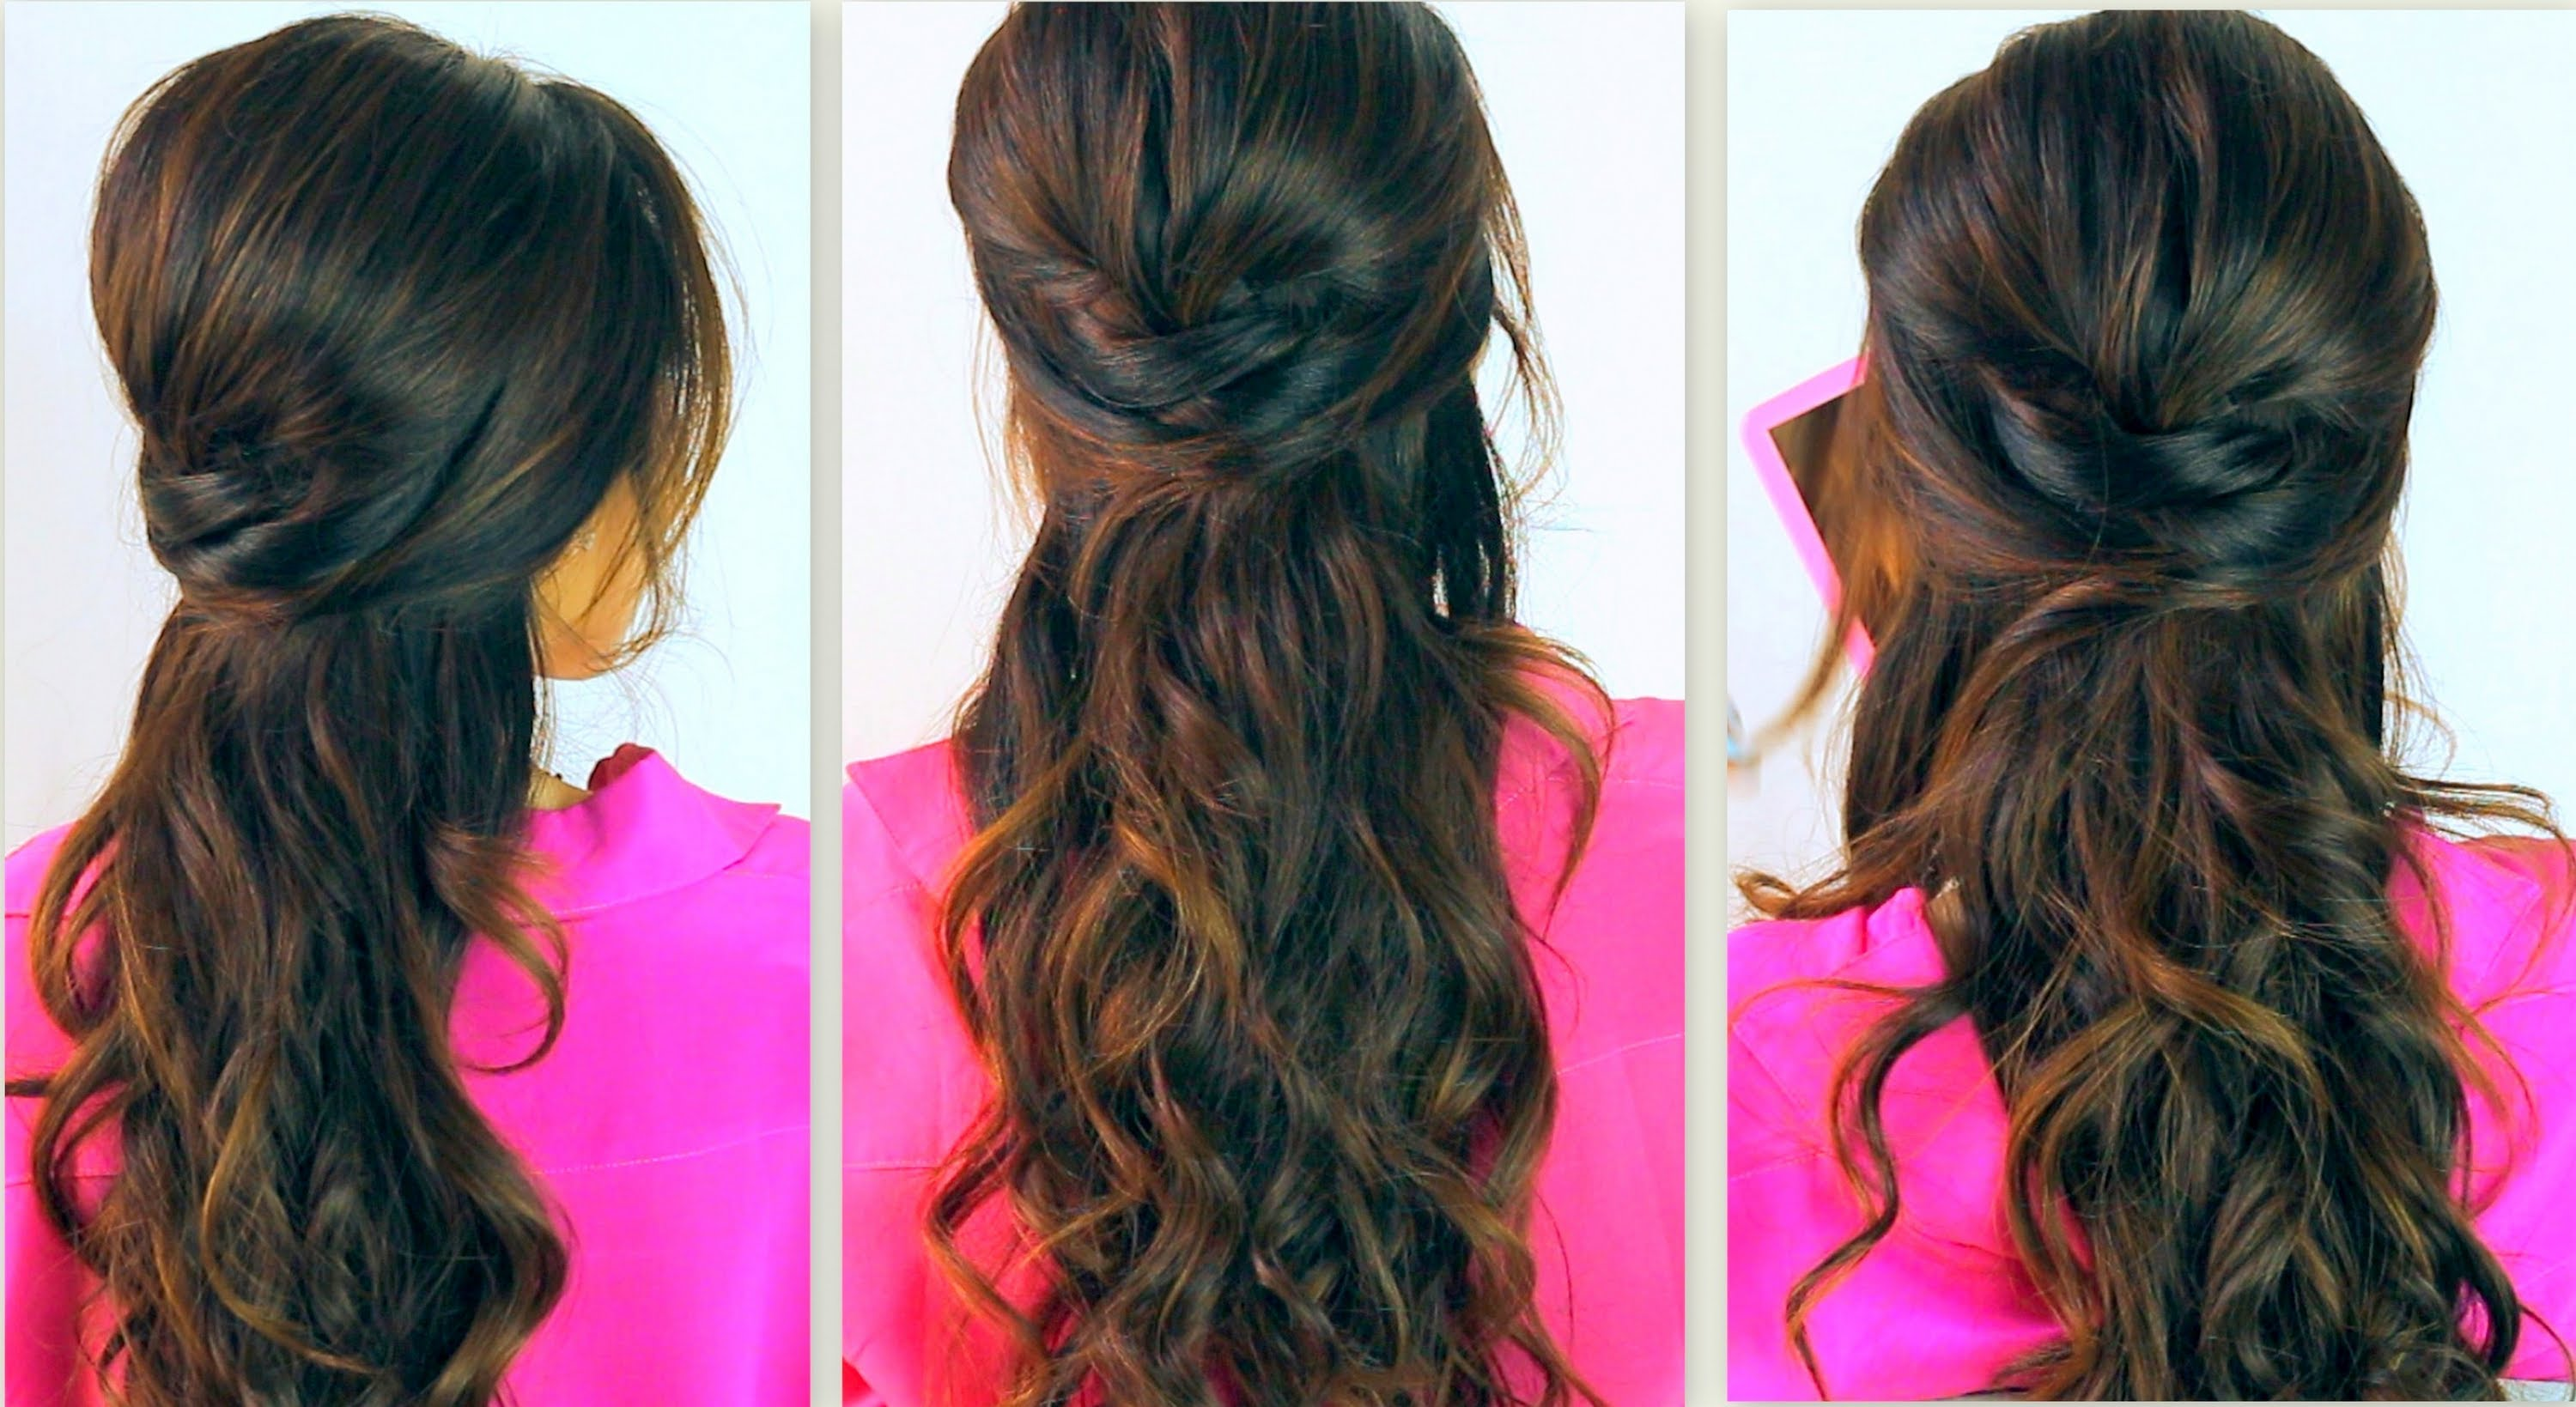 Half Up Hairstyles For School Free Hairstyles